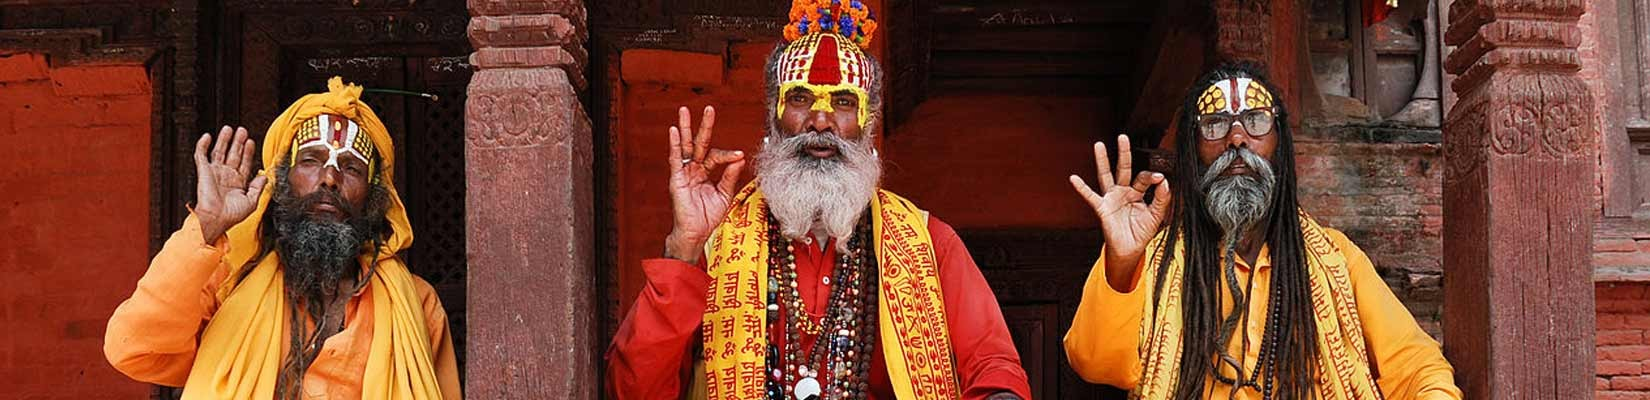 Sadhus at Pasupathinath Temple - One Day Tour in Kathmandu